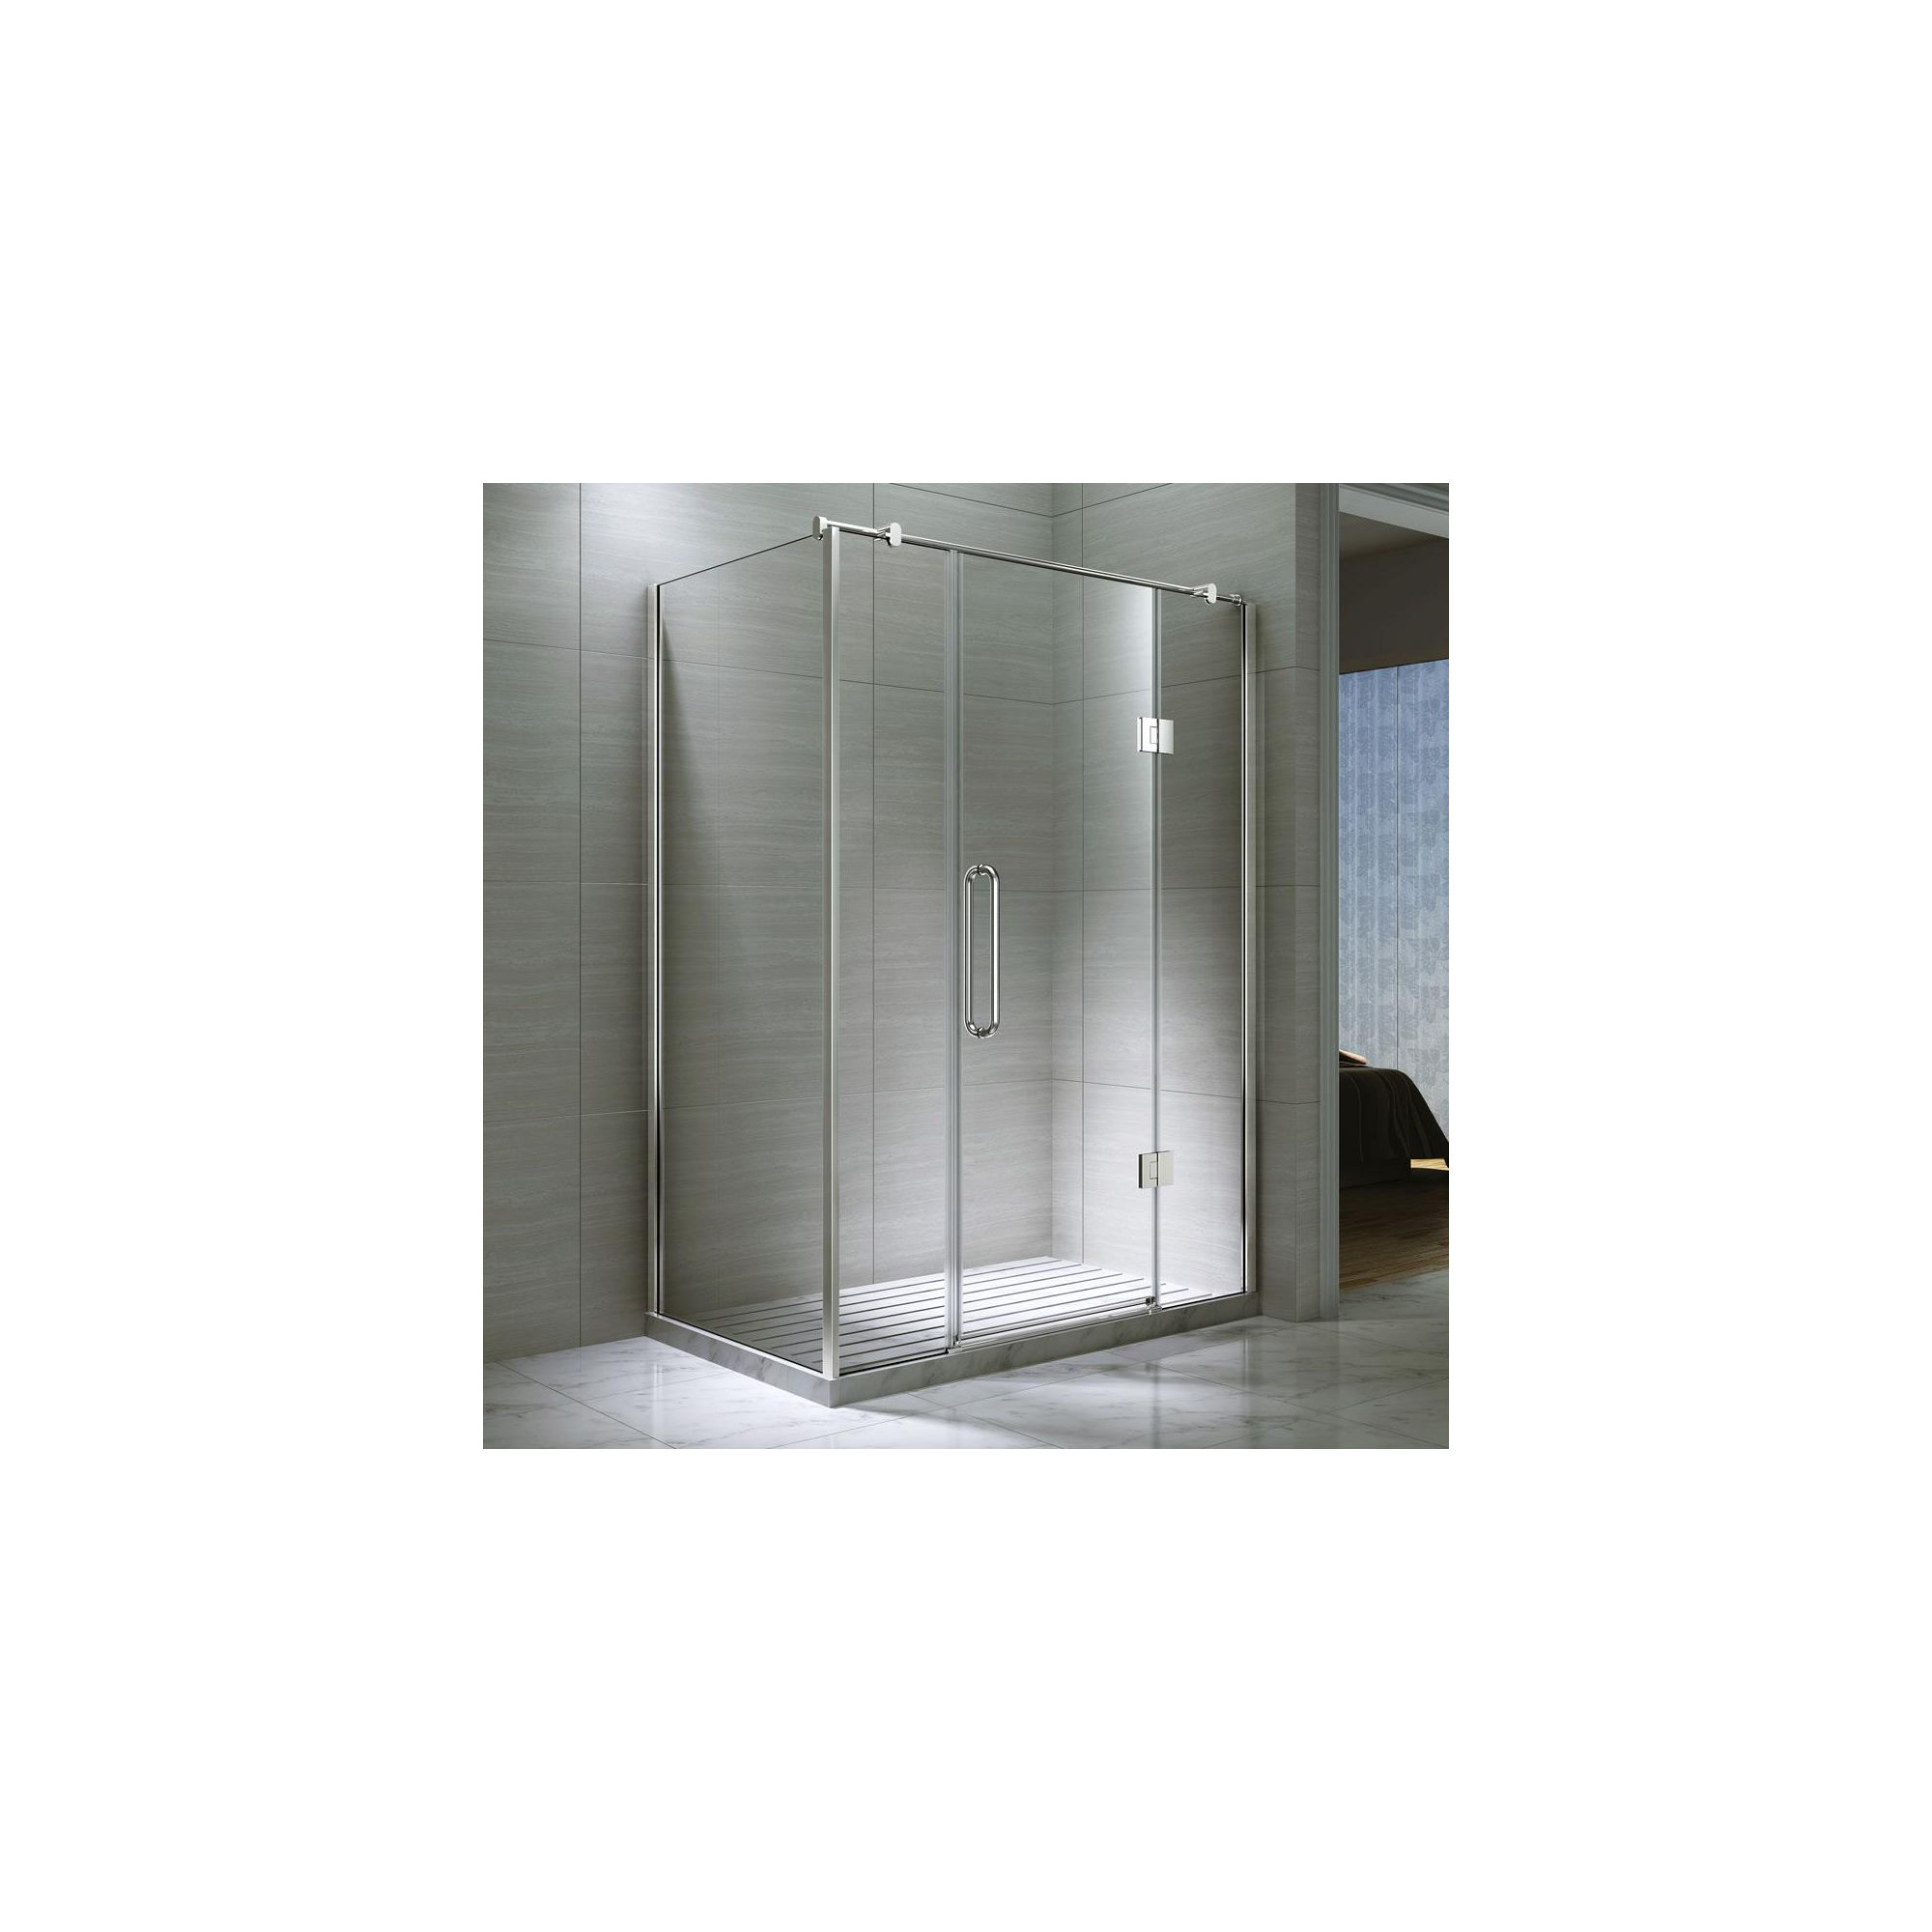 Desire Ten Double Inline Hinged Shower Door with Side Panel, 1200mm x 900mm, Semi-Frameless, 10mm Glass at Tesco Direct